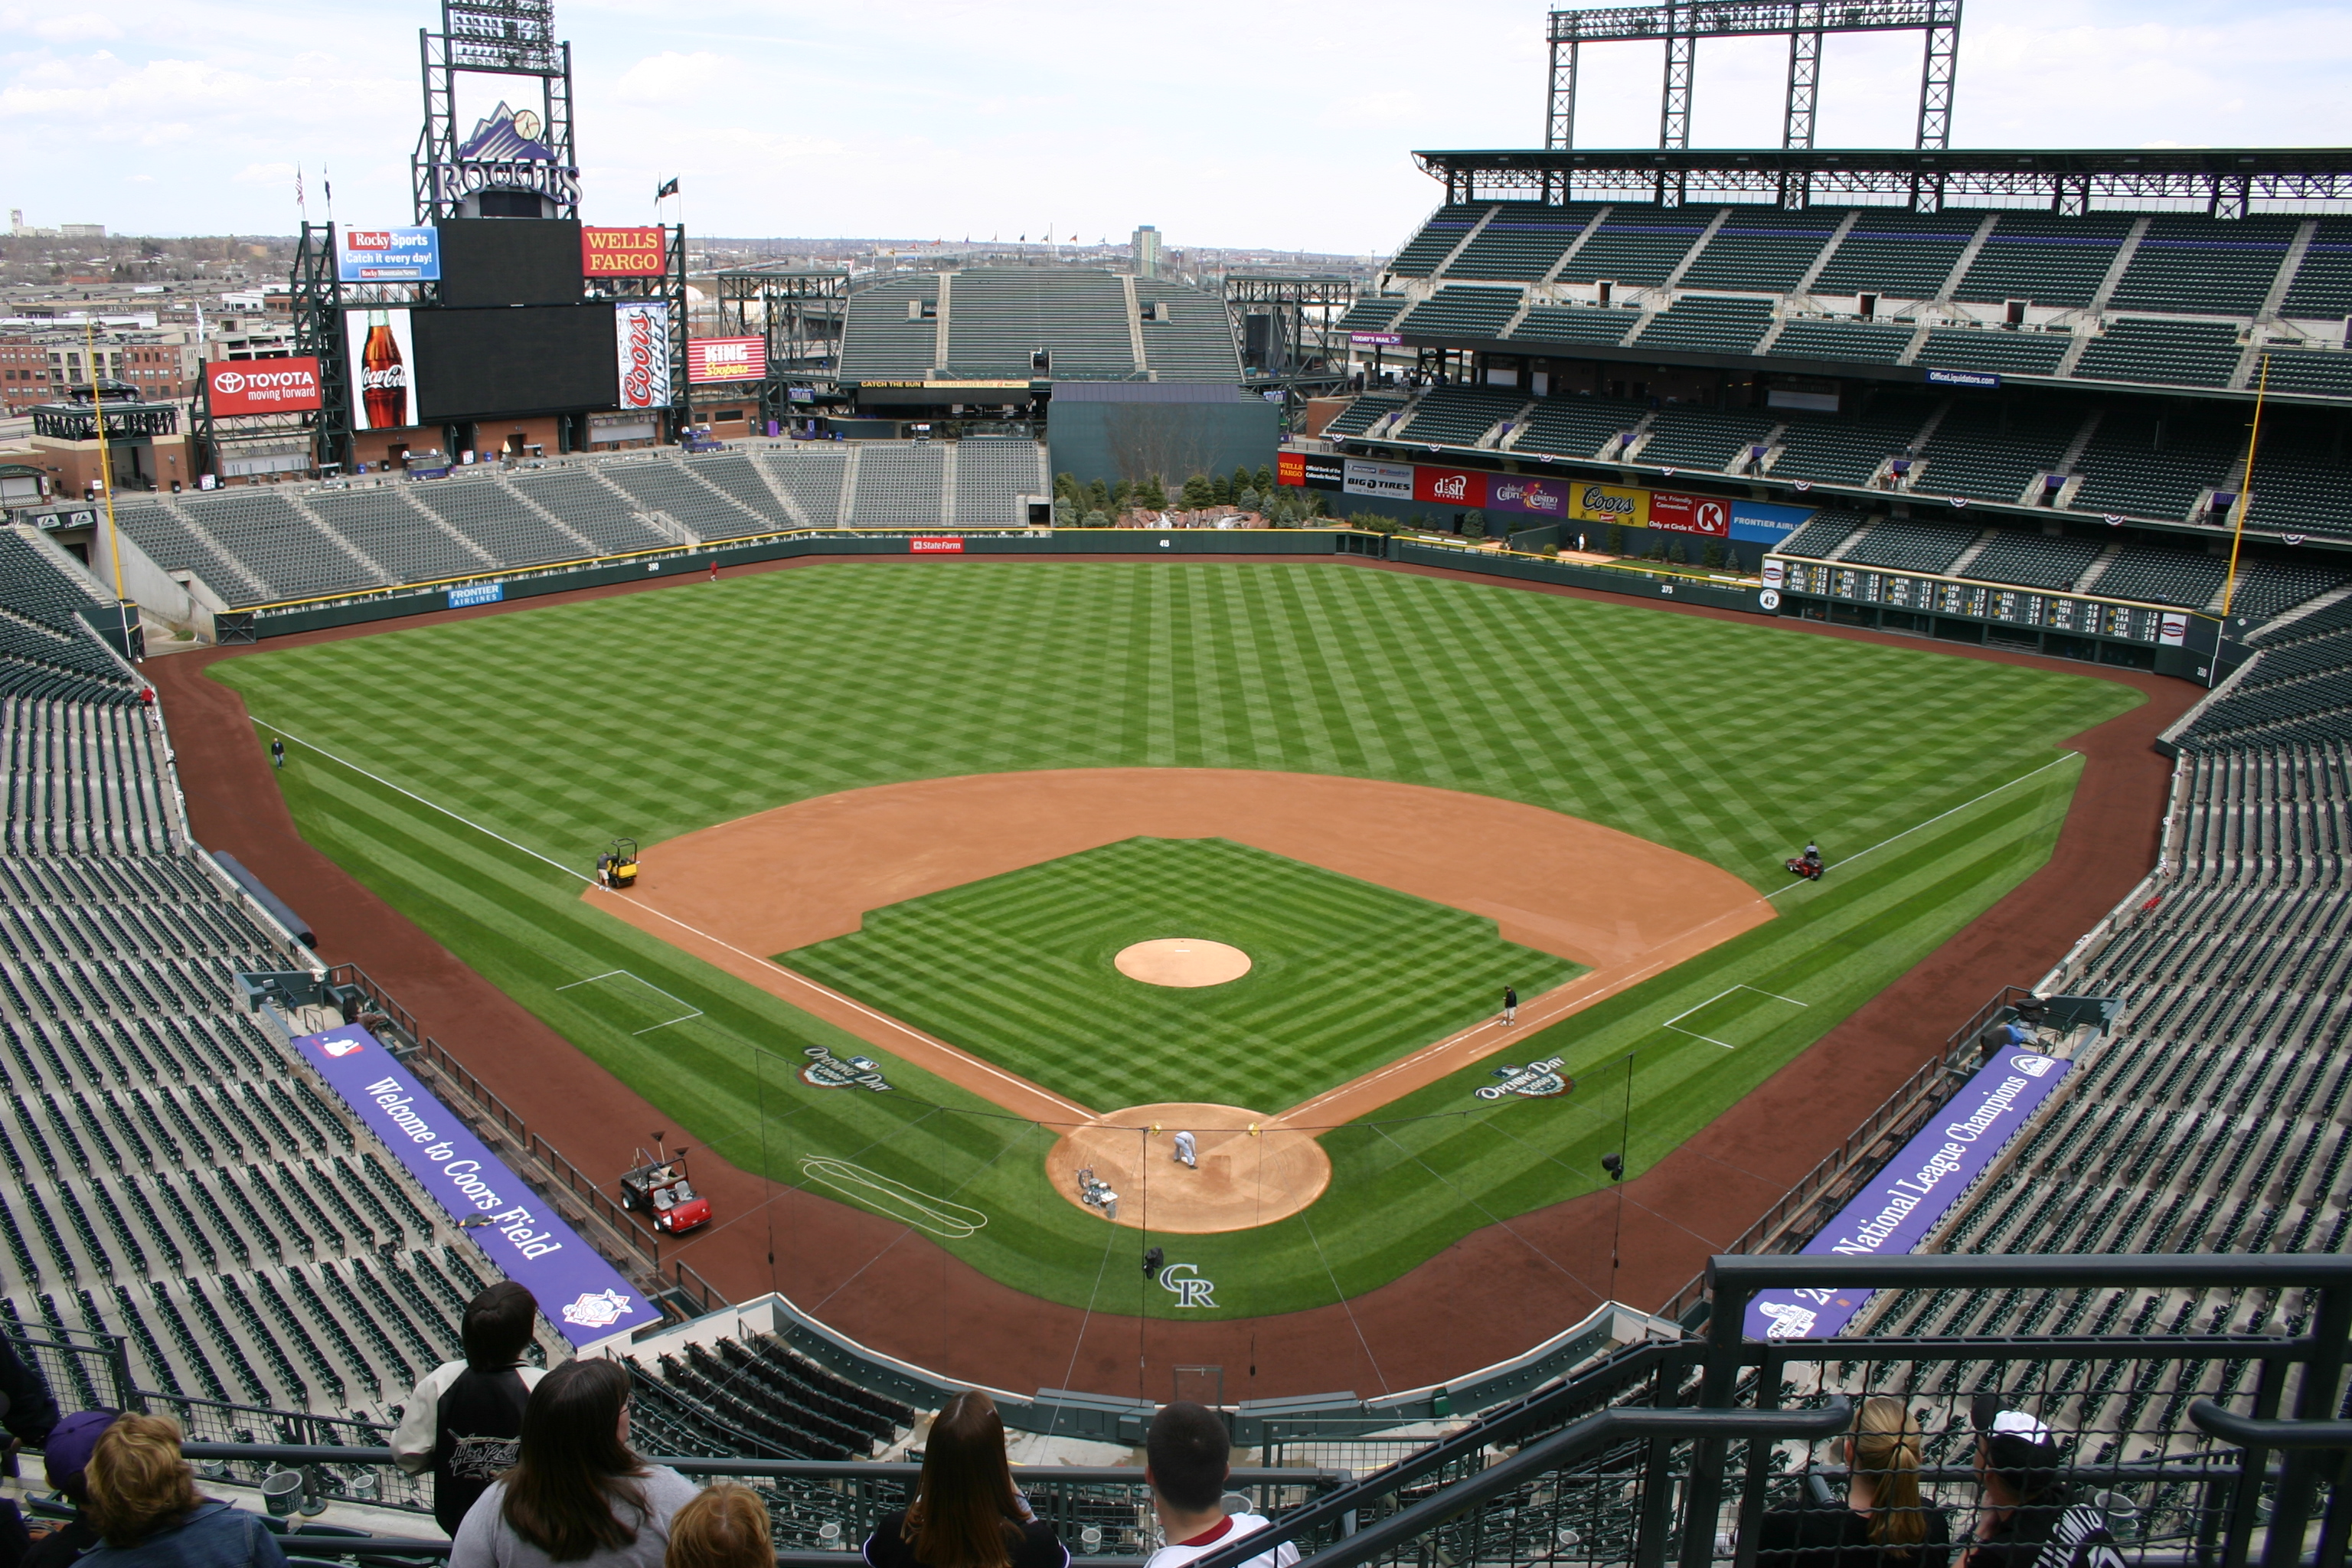 Coors Field,Rockies,baseball trips,ballpark tours,baseball stadiums